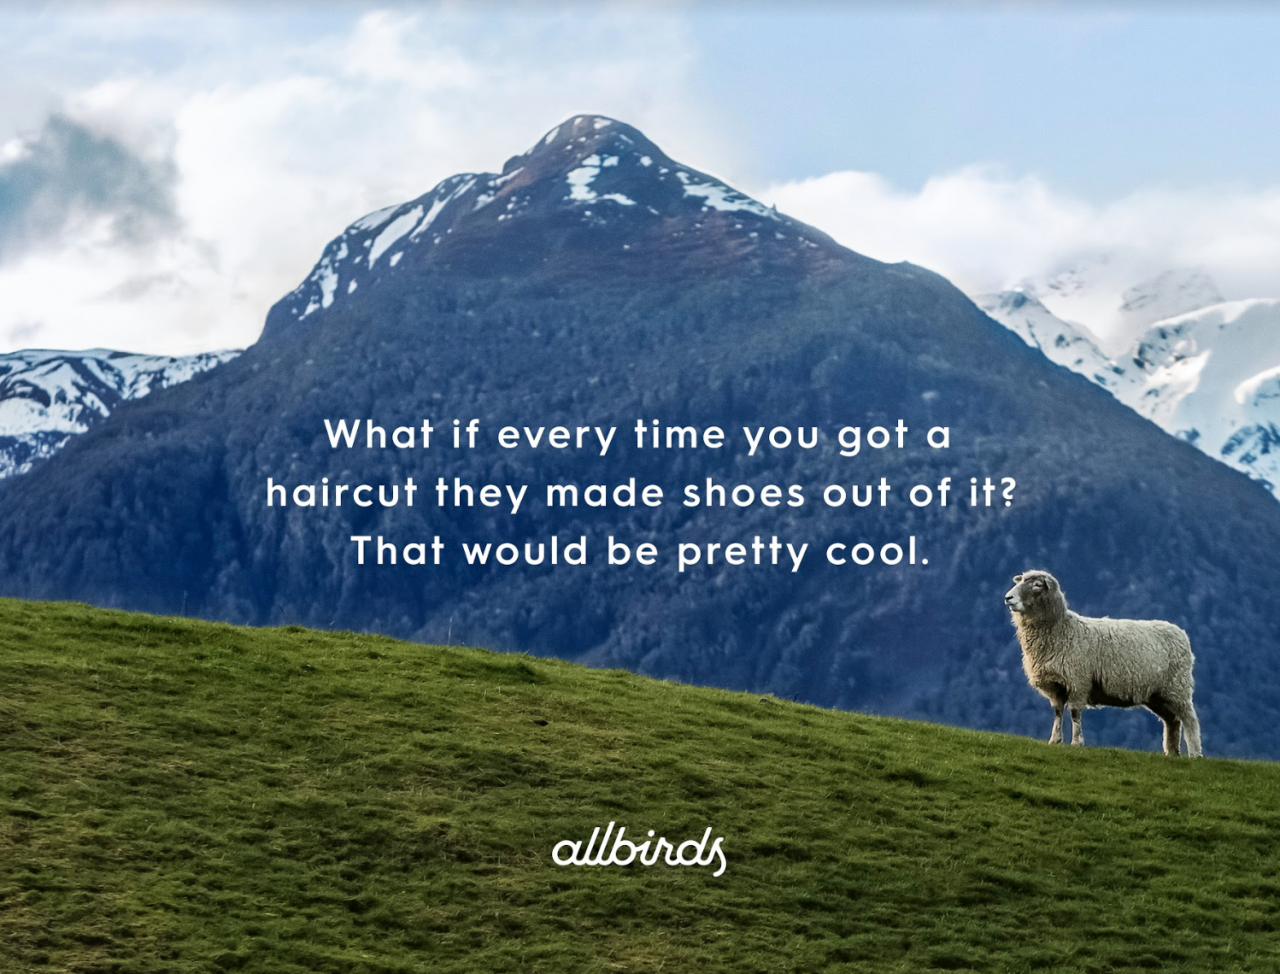 Allbirds: Meet Your Shoes by Anomaly